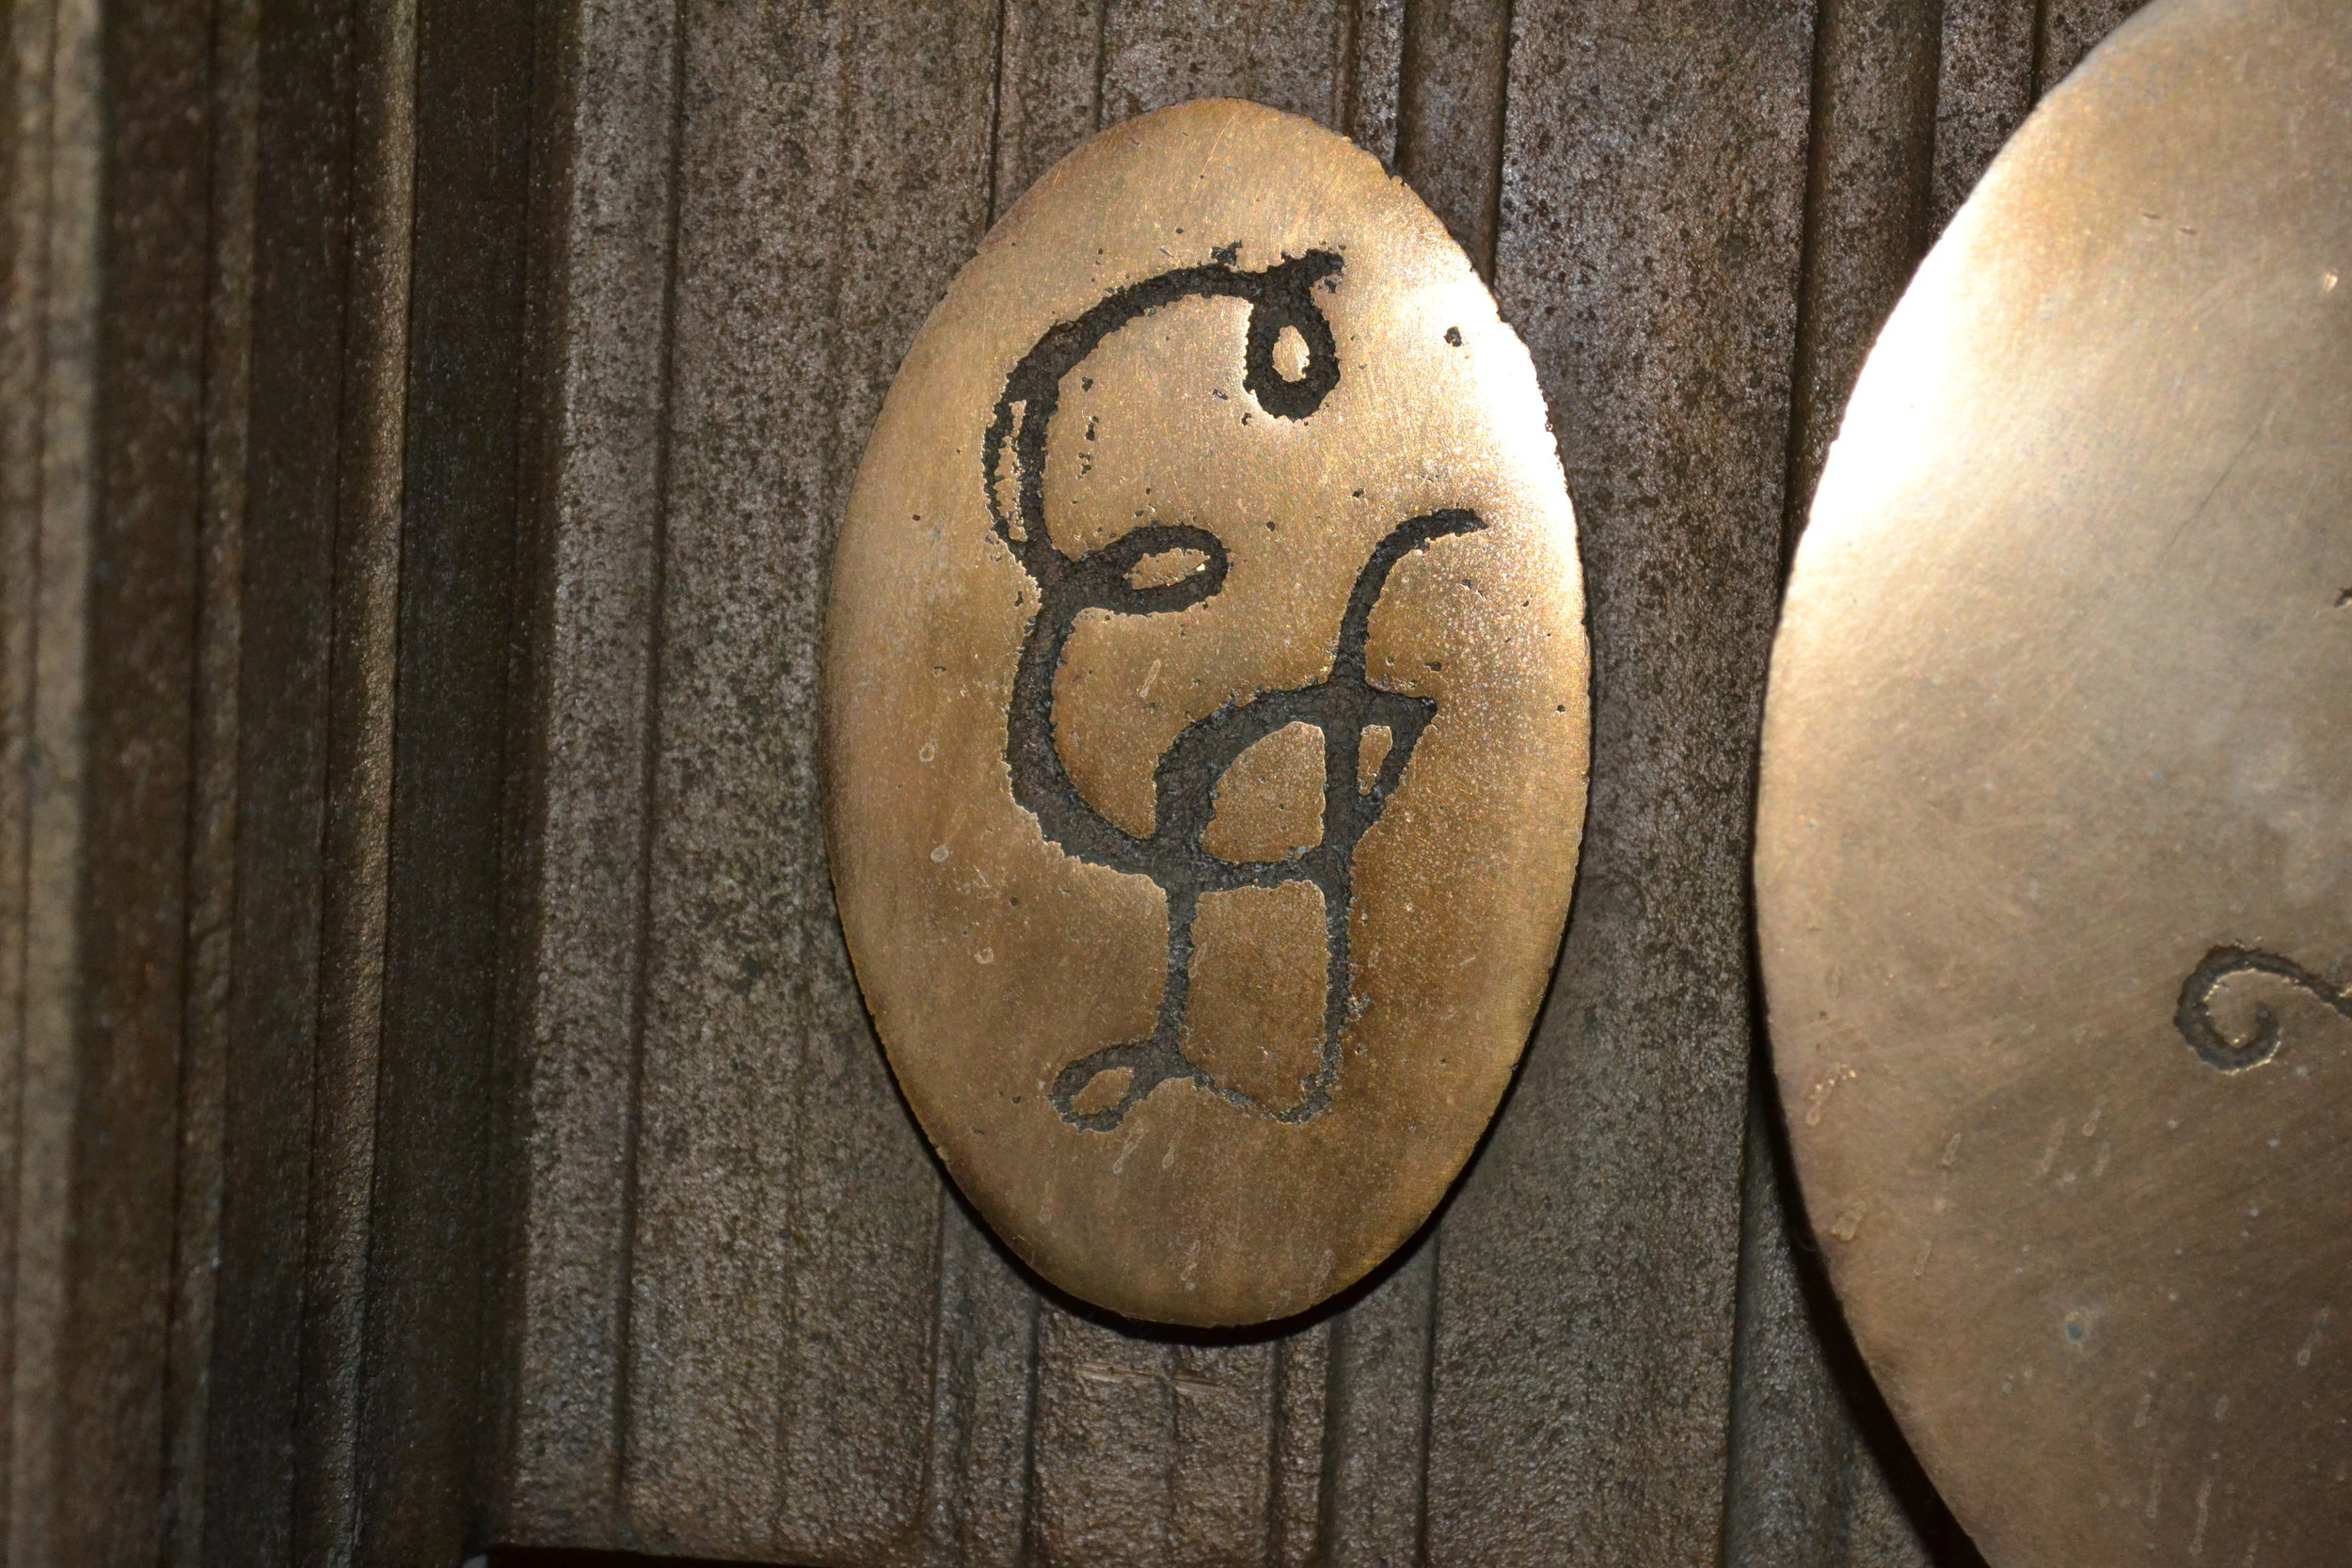 Emily Dickinson's highly stylized initials on a bronze medallion.